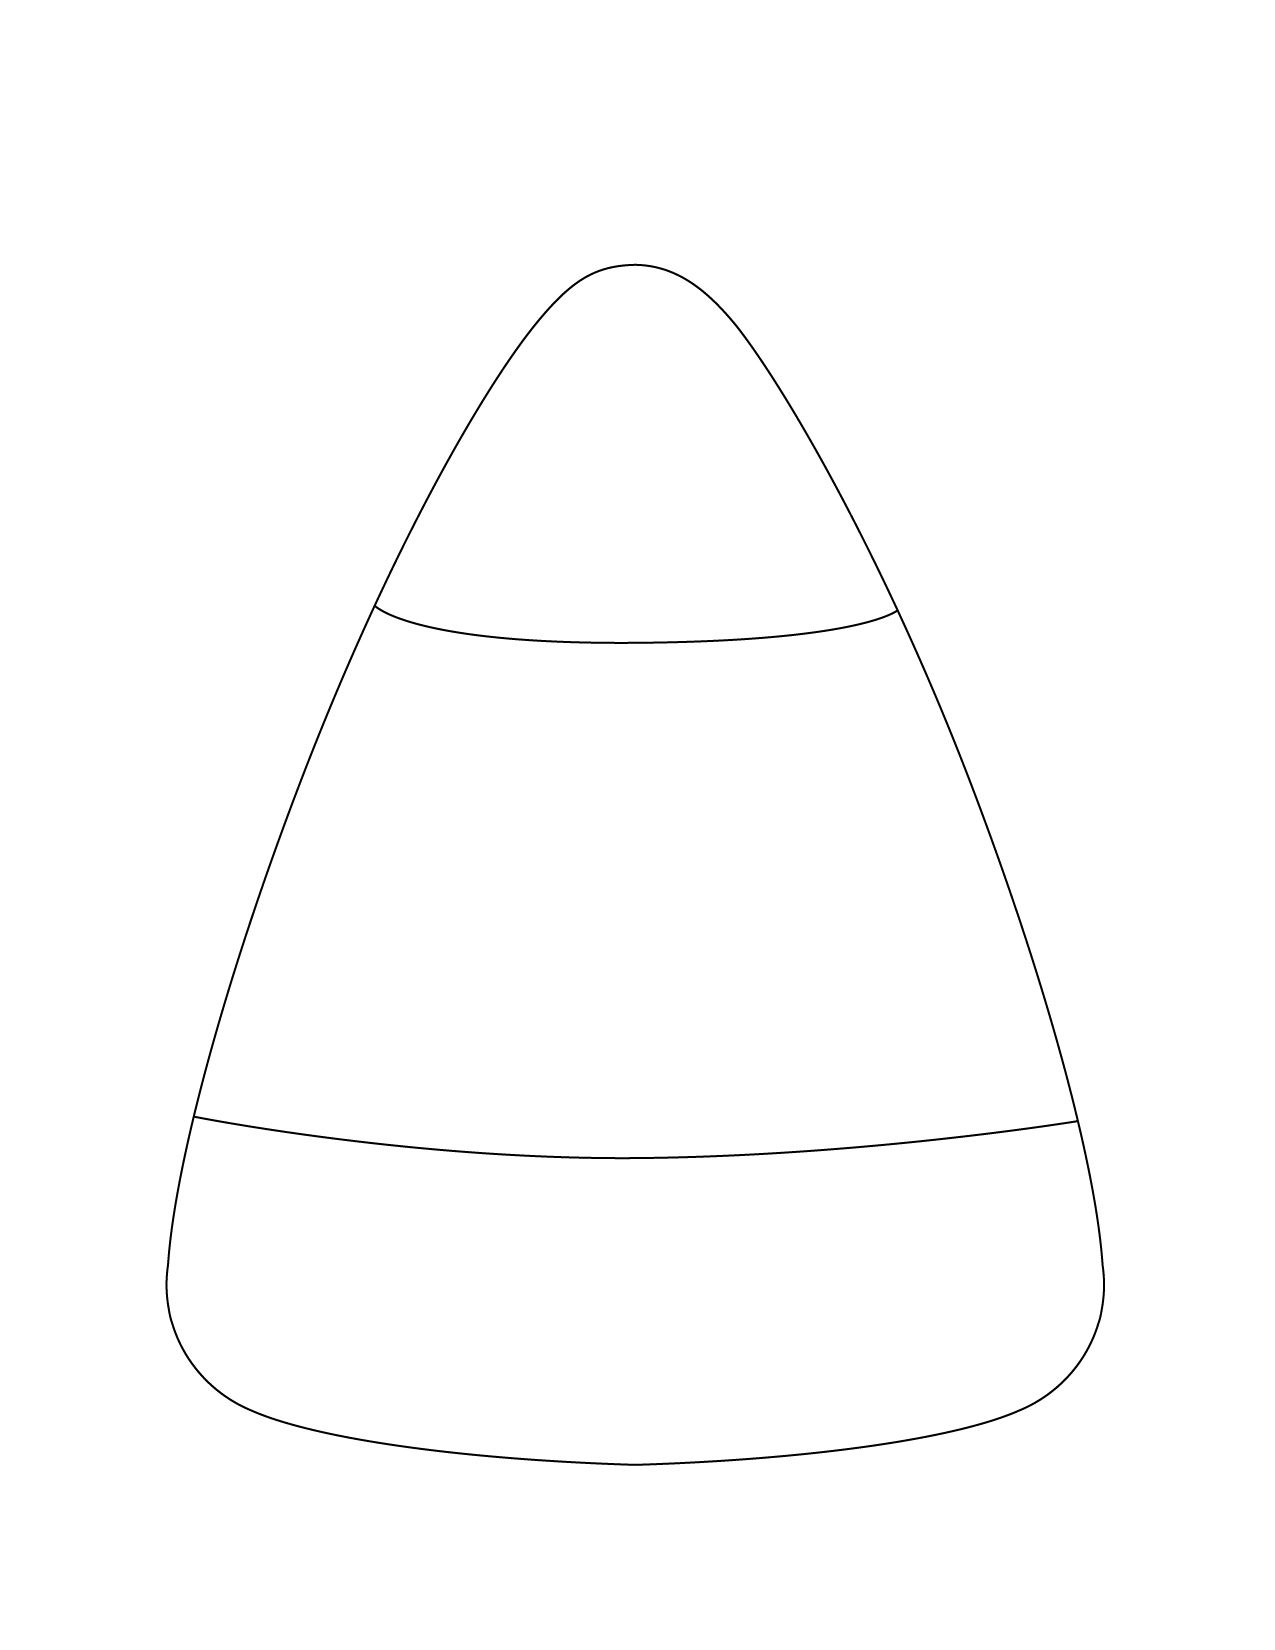 Candy Corn Template Printable In 2020 Pictures Of Candy Corn Candy Coloring Pages Candy Corn